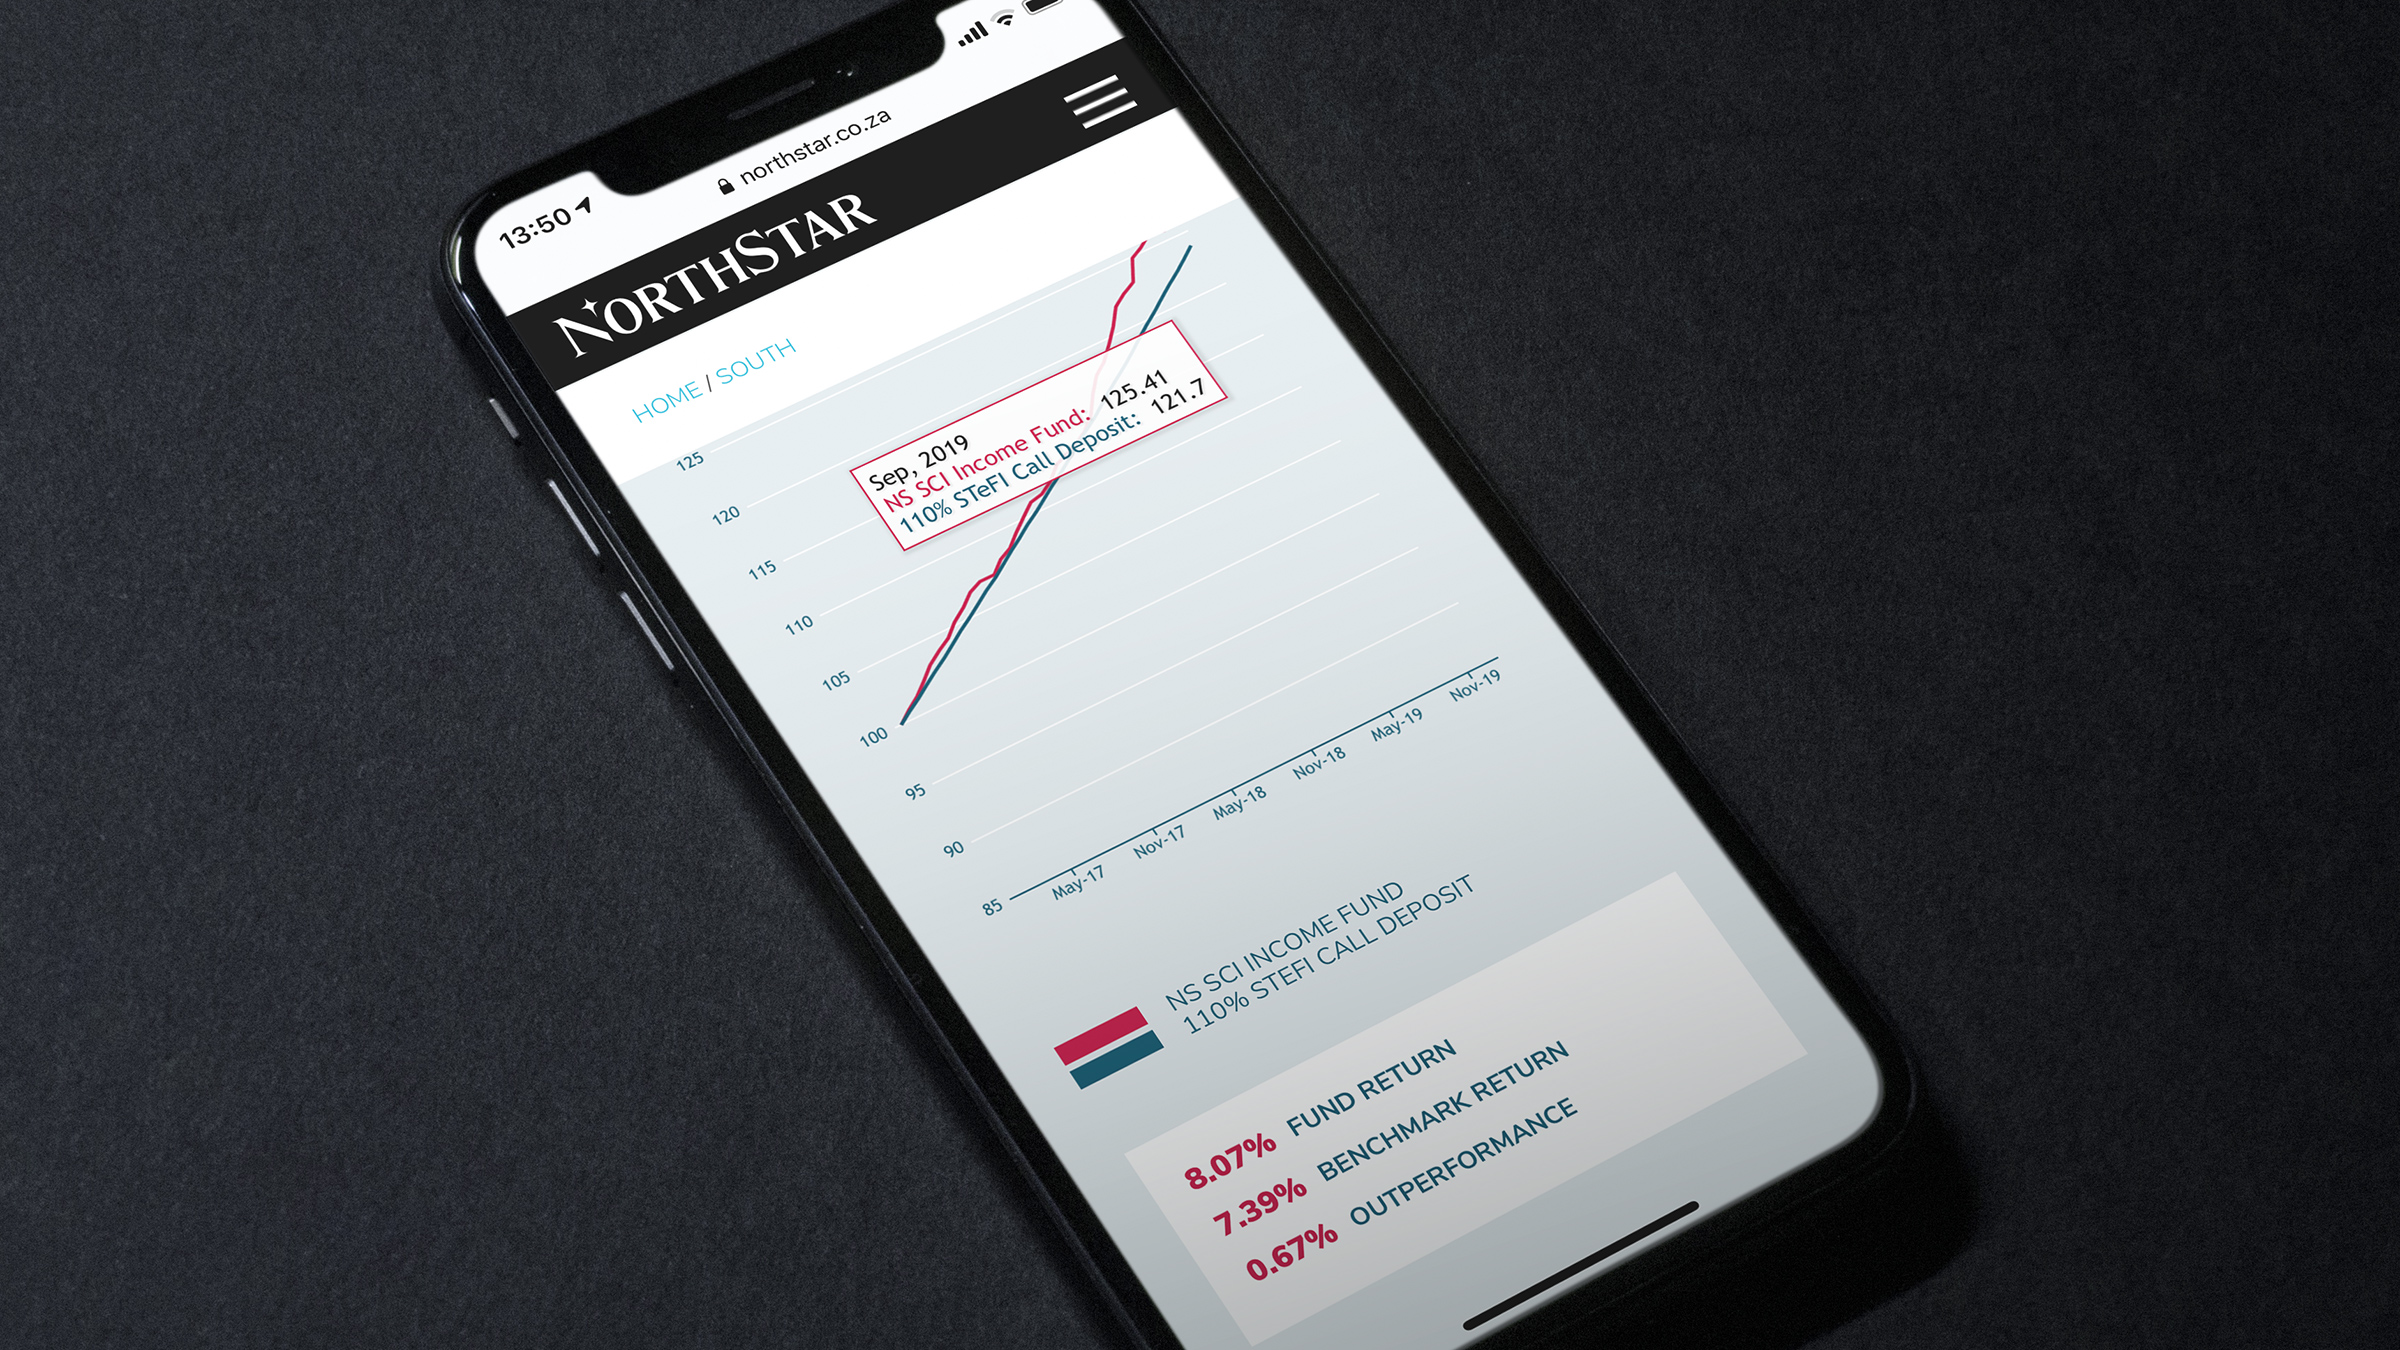 Rendering the charts in the mobile format was always going to be tricky!